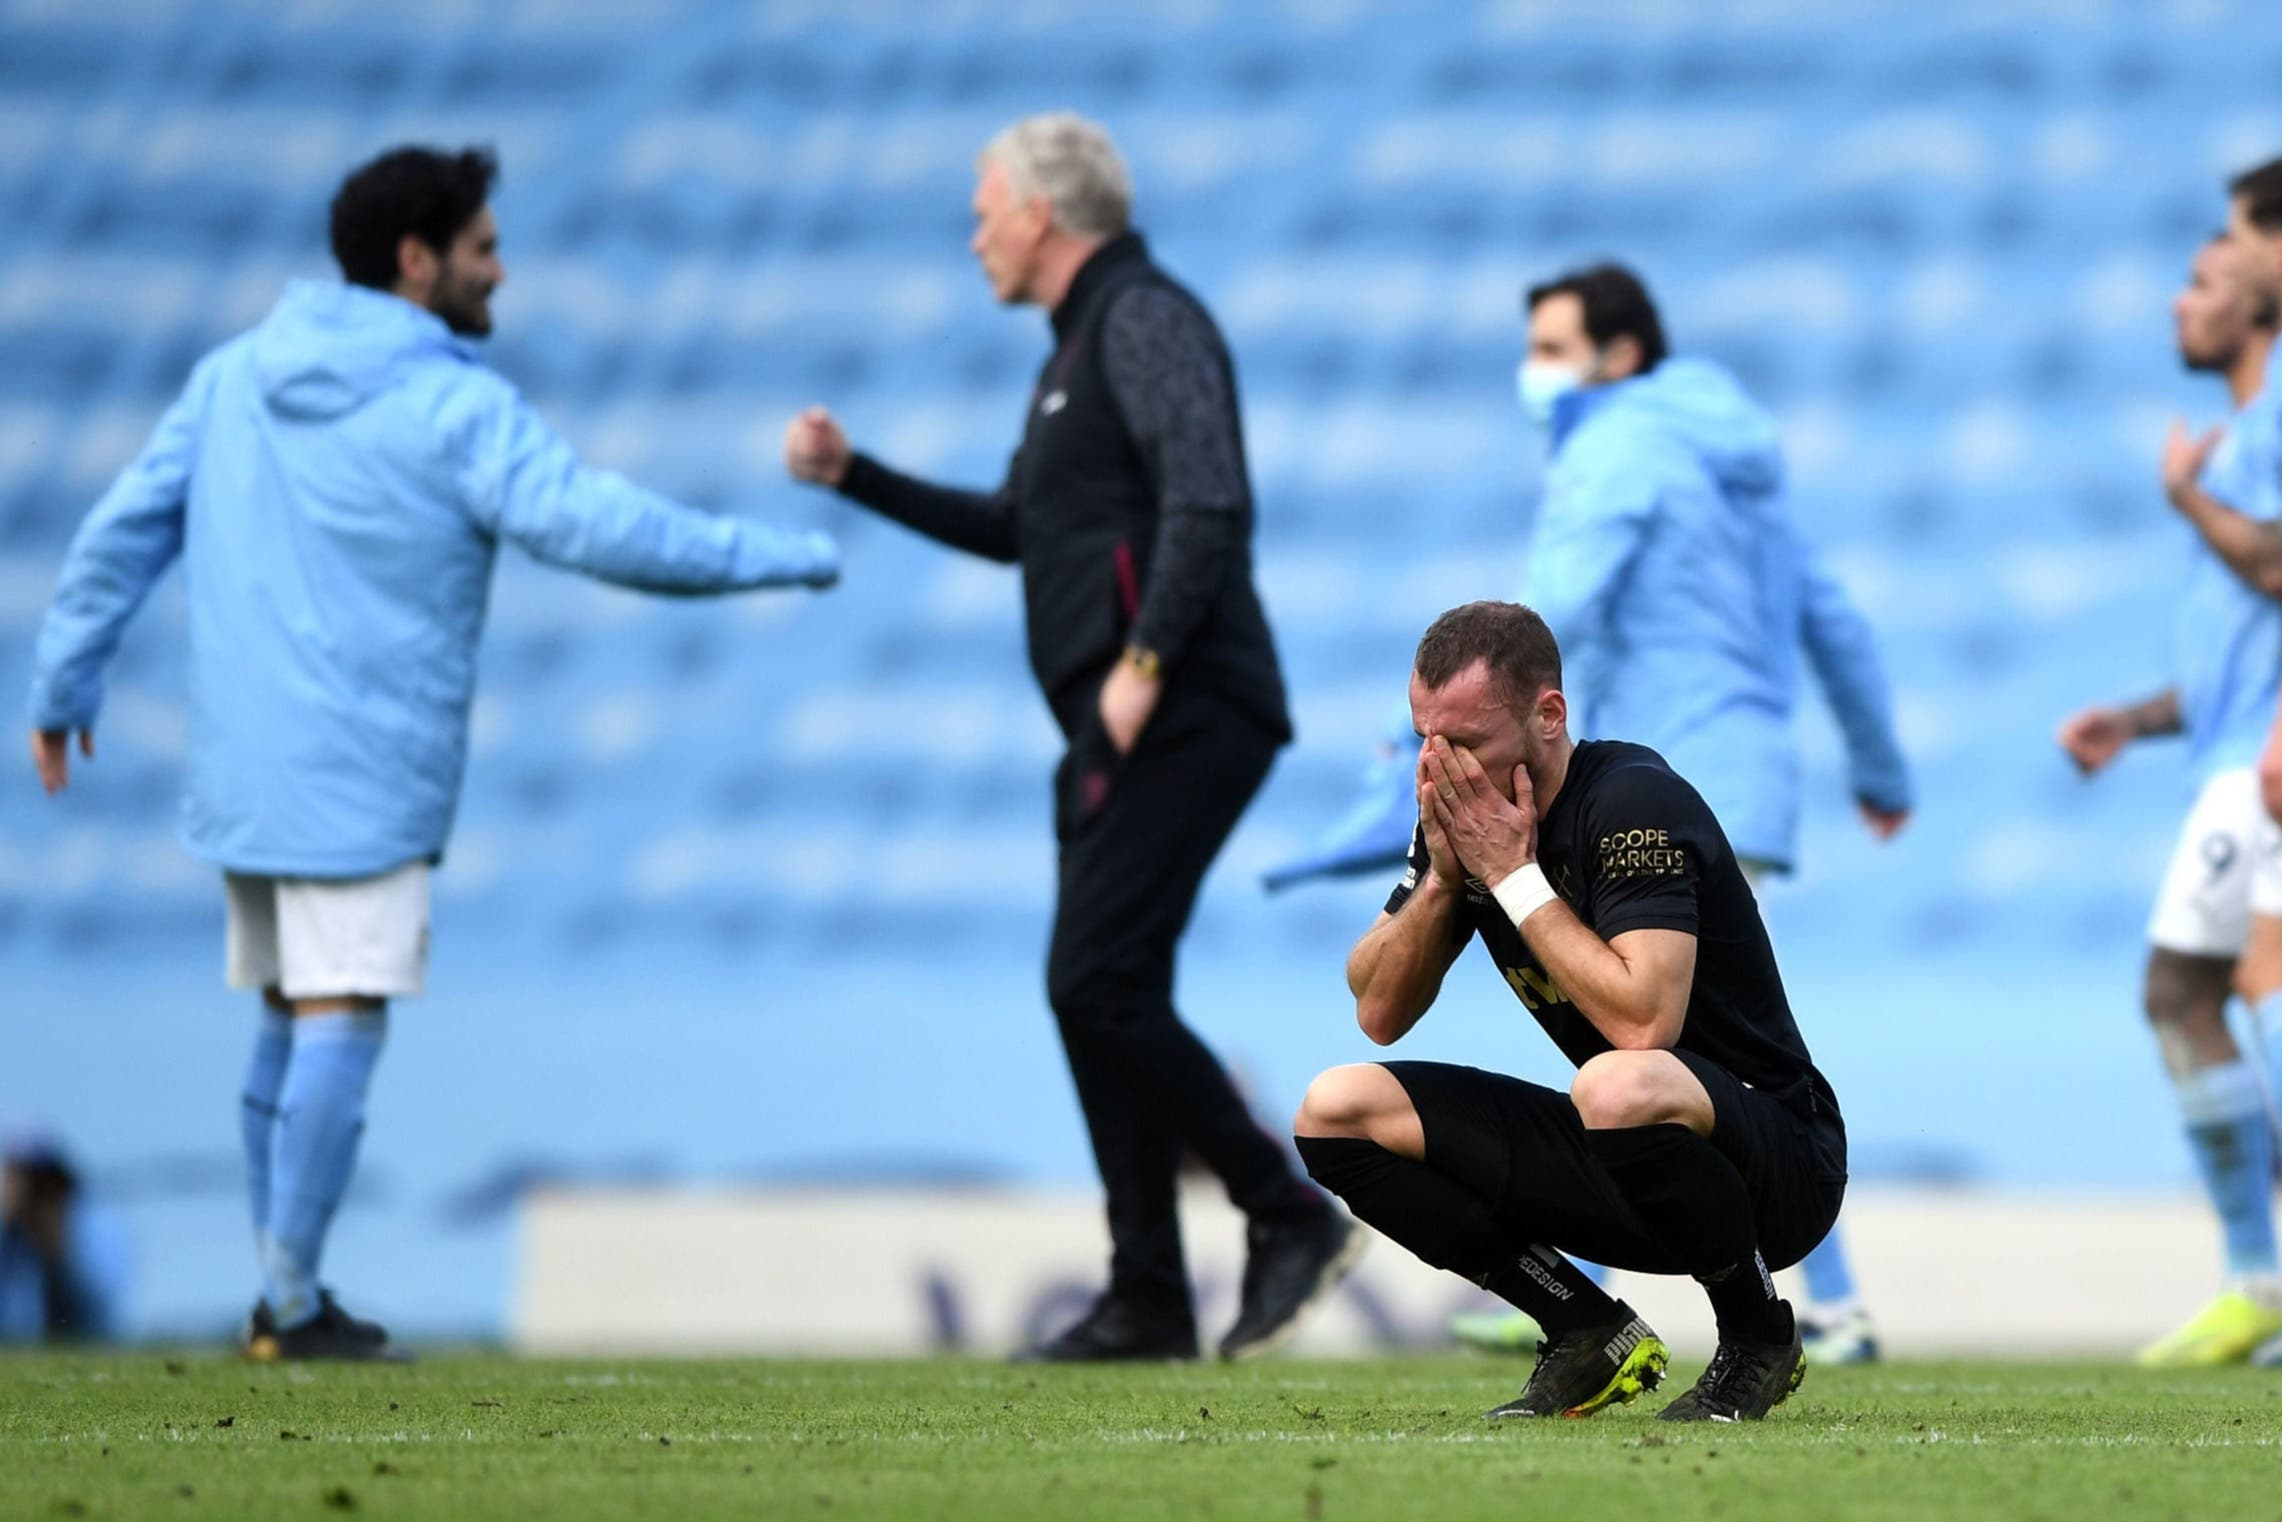 West Ham take heart in defeat despite being undone by Man City's clinical touch